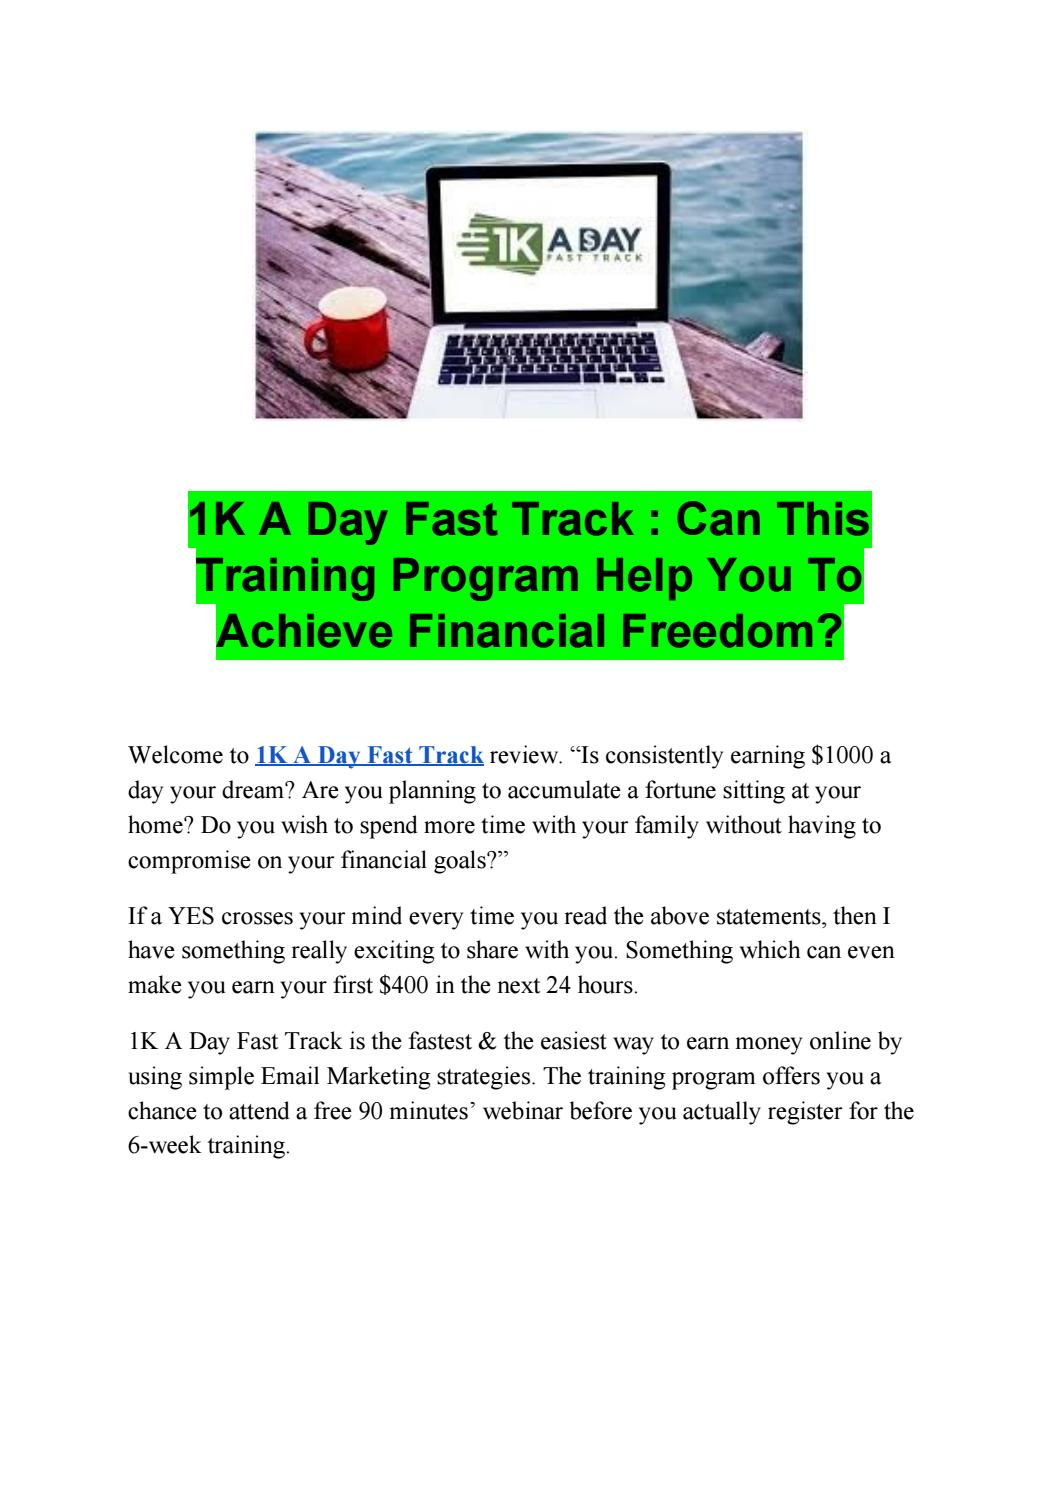 1k A Day Fast Track  Used Training Program